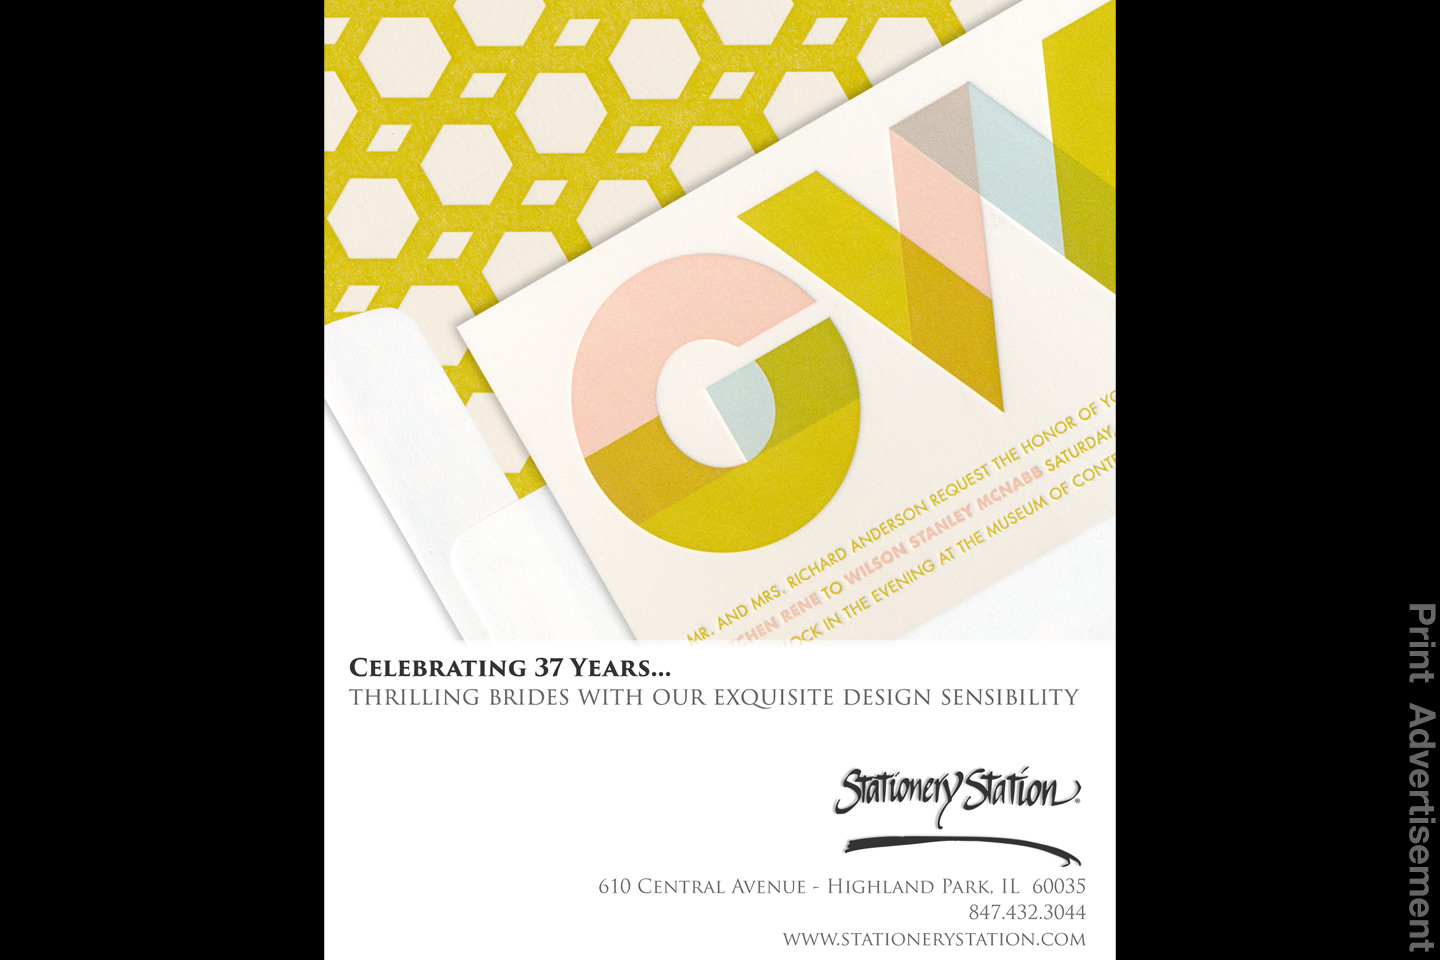 a sample stationery station print advertisement for chicago brides magazine, designed by 4d, inc